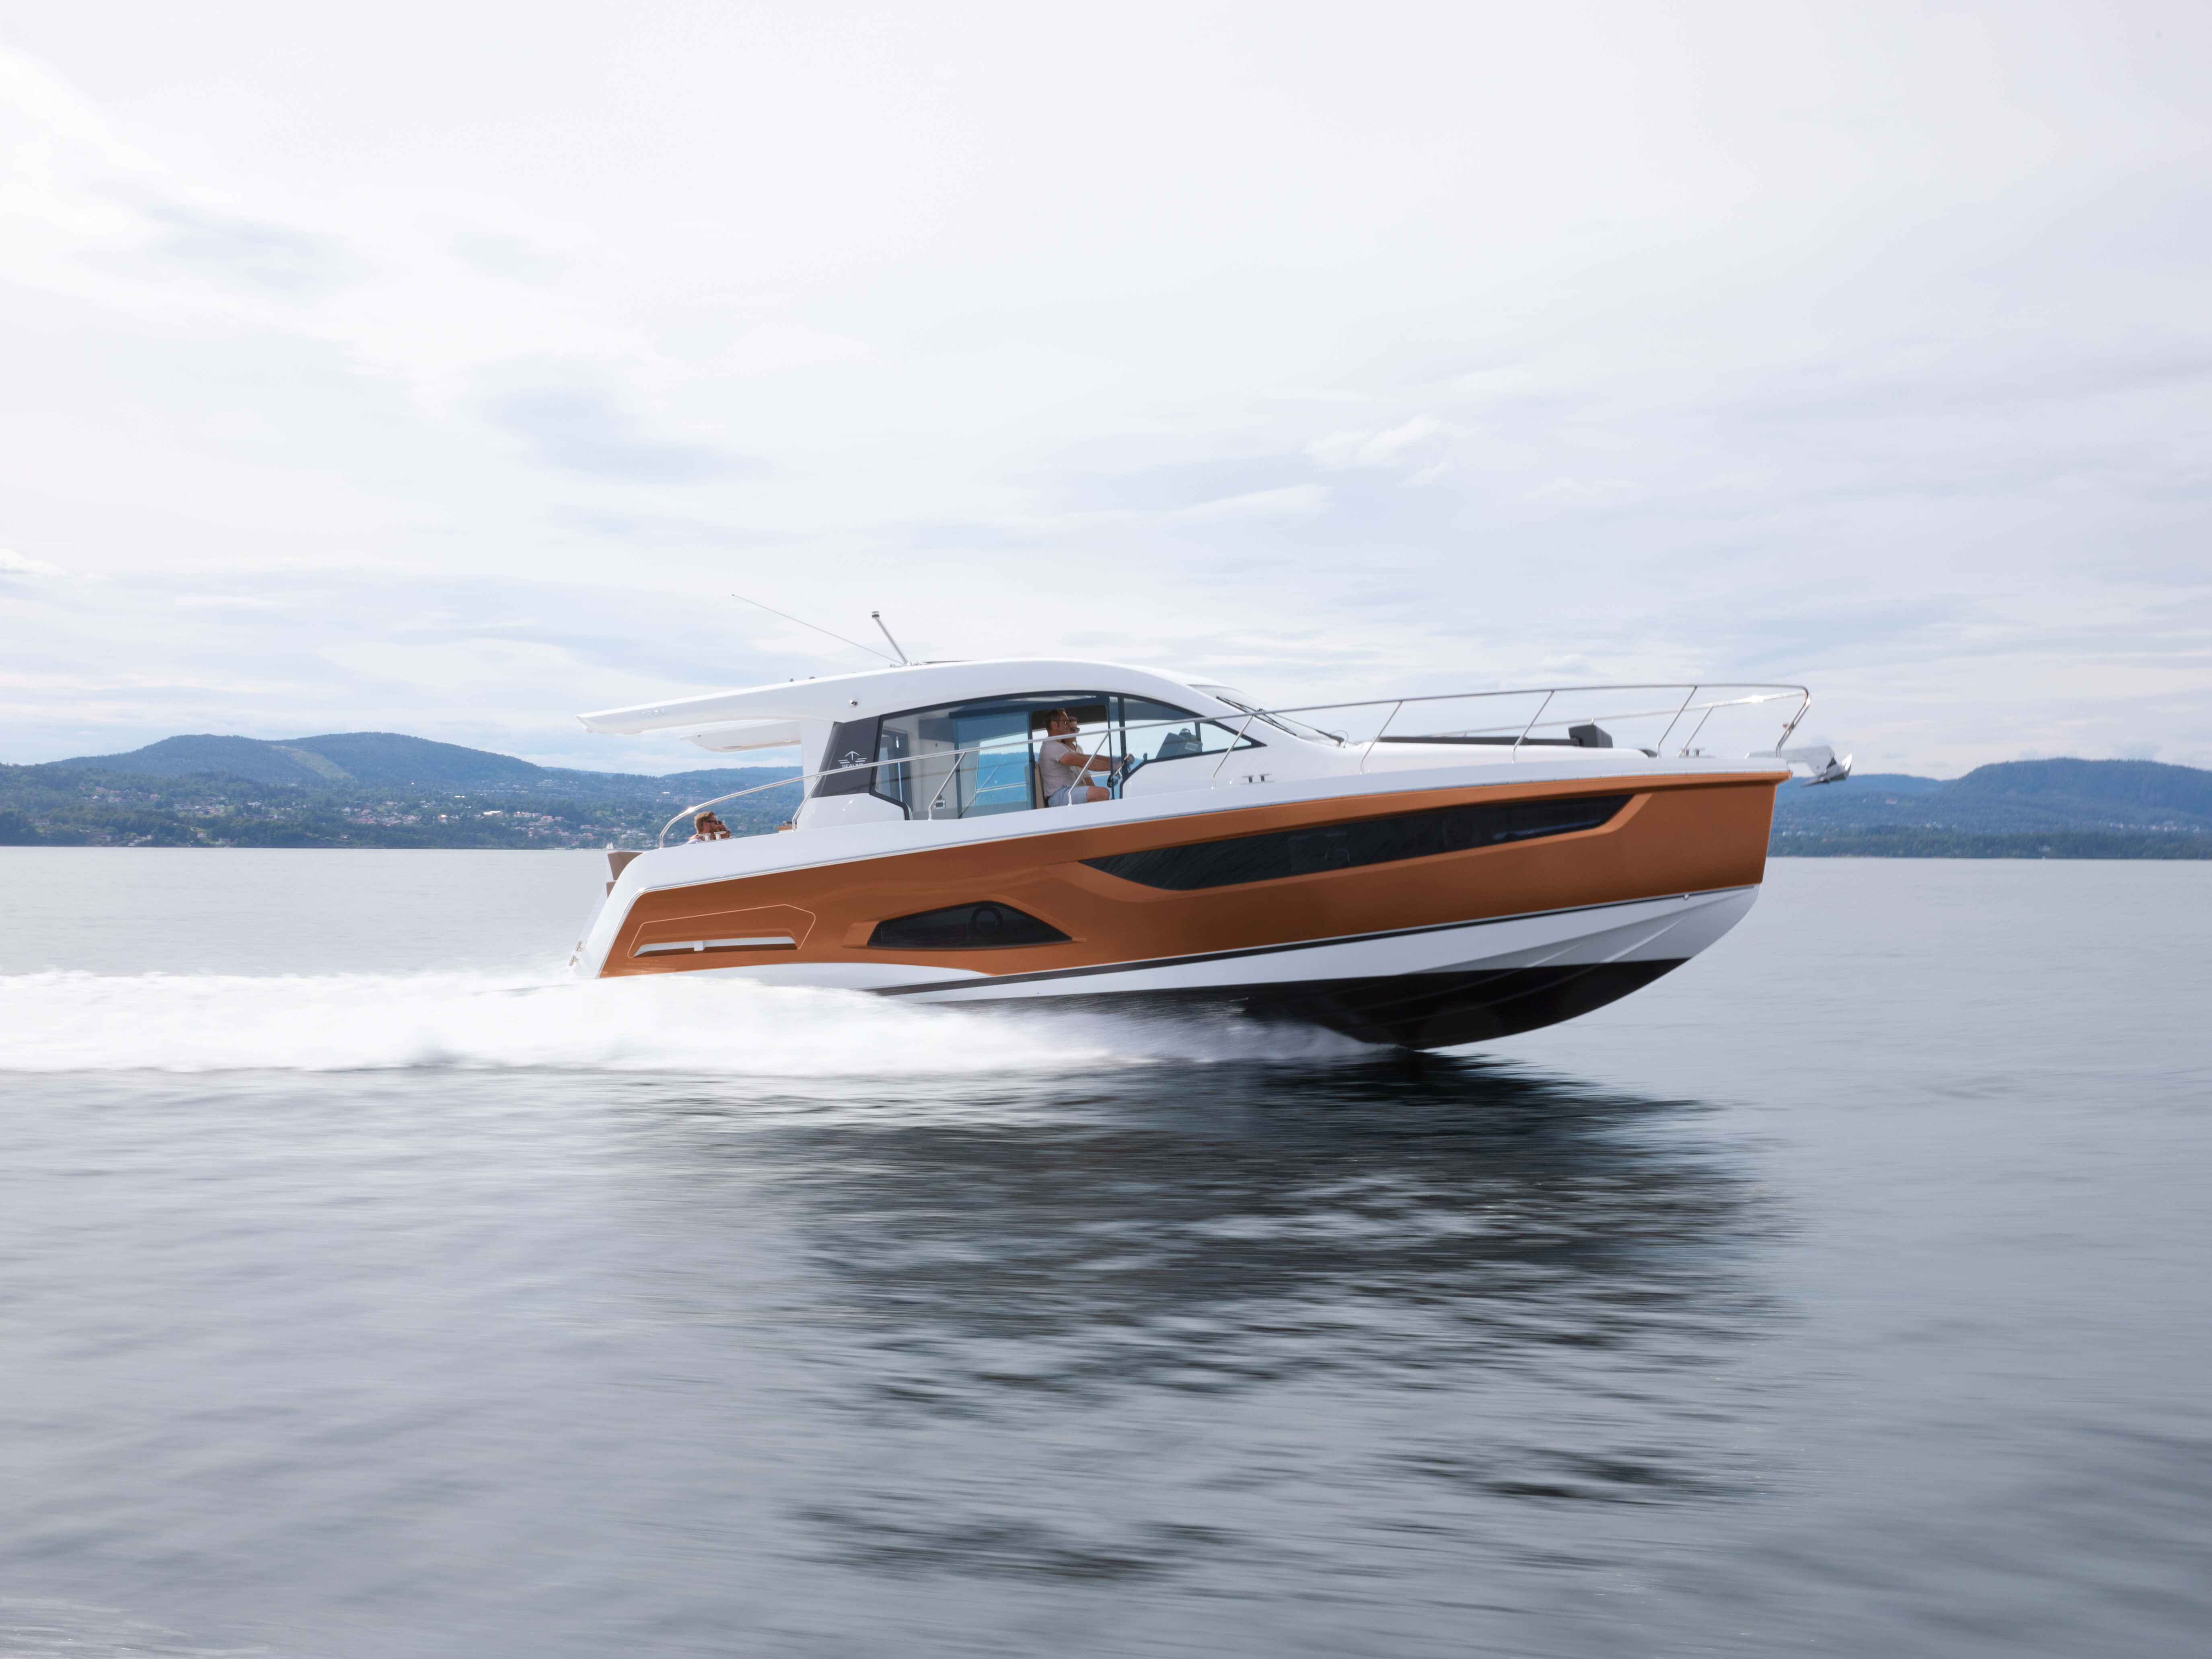 Sealine C390 exterior | Every curve, line and surface is designed to create the most intense motor yacht experience. | Sealine